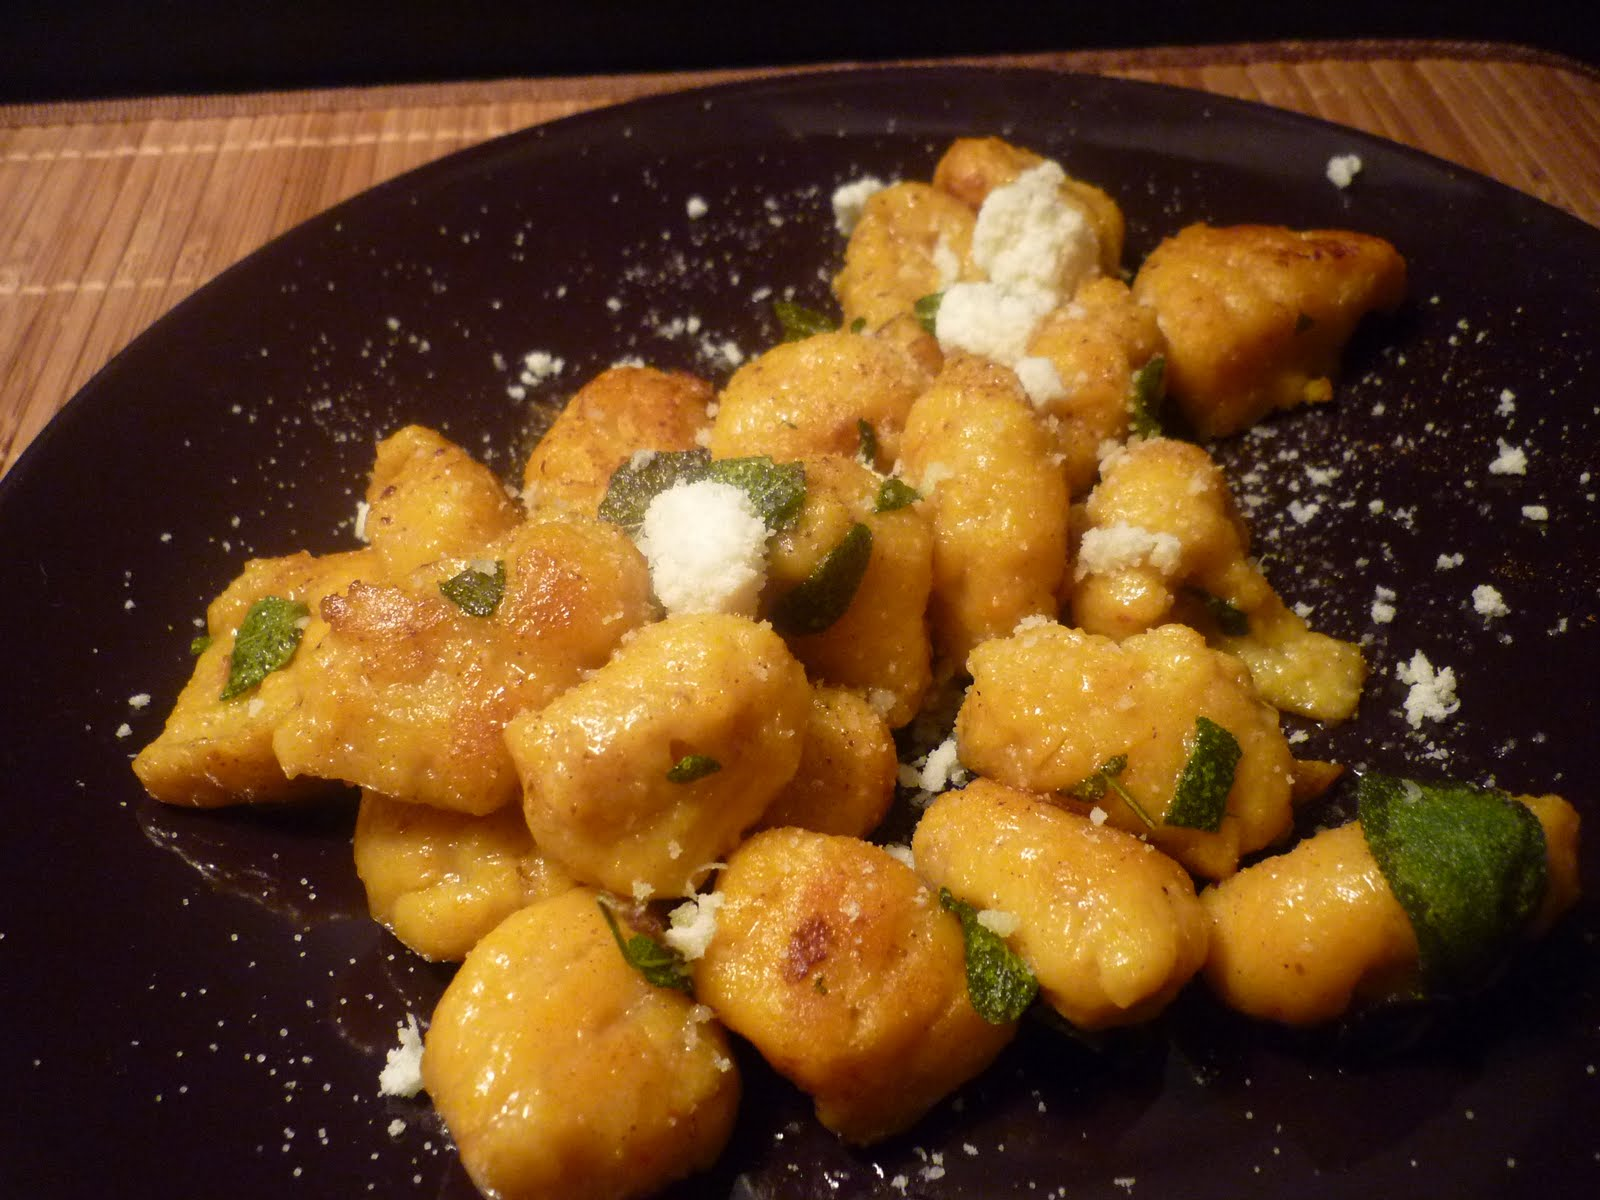 Gnocchi In A Gorgonzola Sauce Topped With Fried Mushrooms Pictures